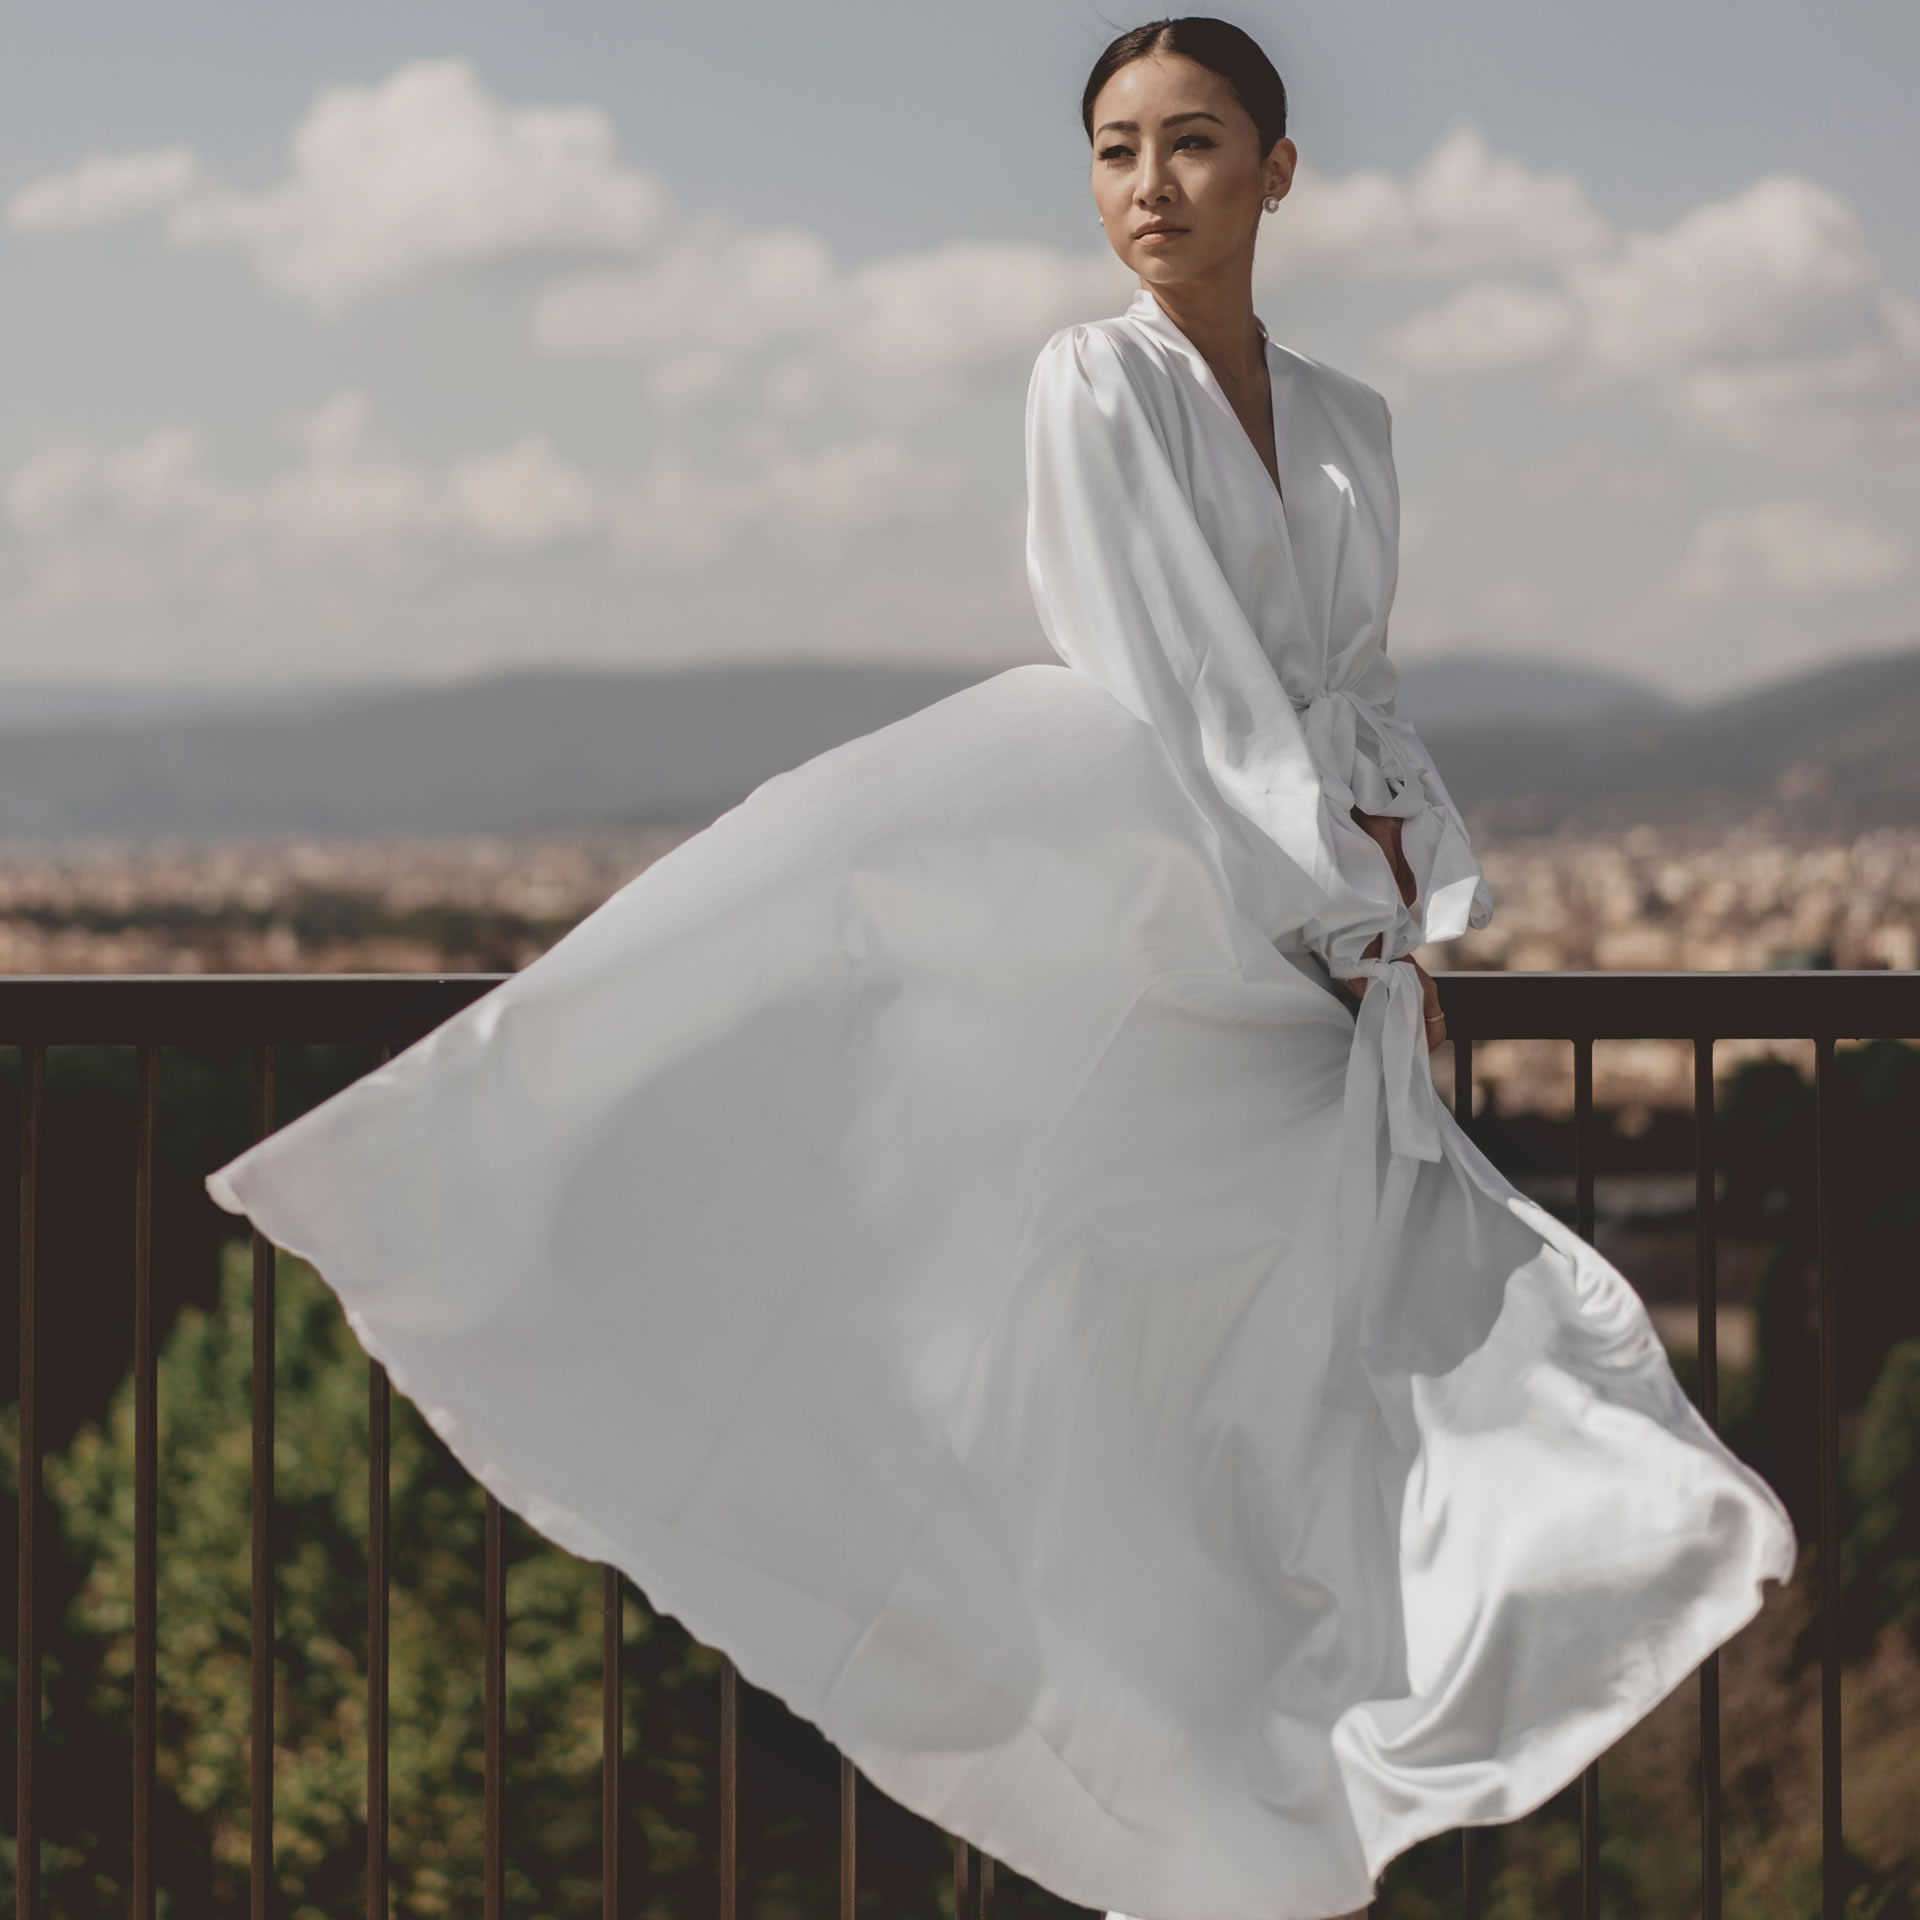 Luxury wedding in Florence (with a chinese tea ceremony) - 9 :: Luxury wedding in Florence (with a chinese tea ceremony) :: Luxury wedding photography - 8 :: Luxury wedding in Florence (with a chinese tea ceremony) - 9